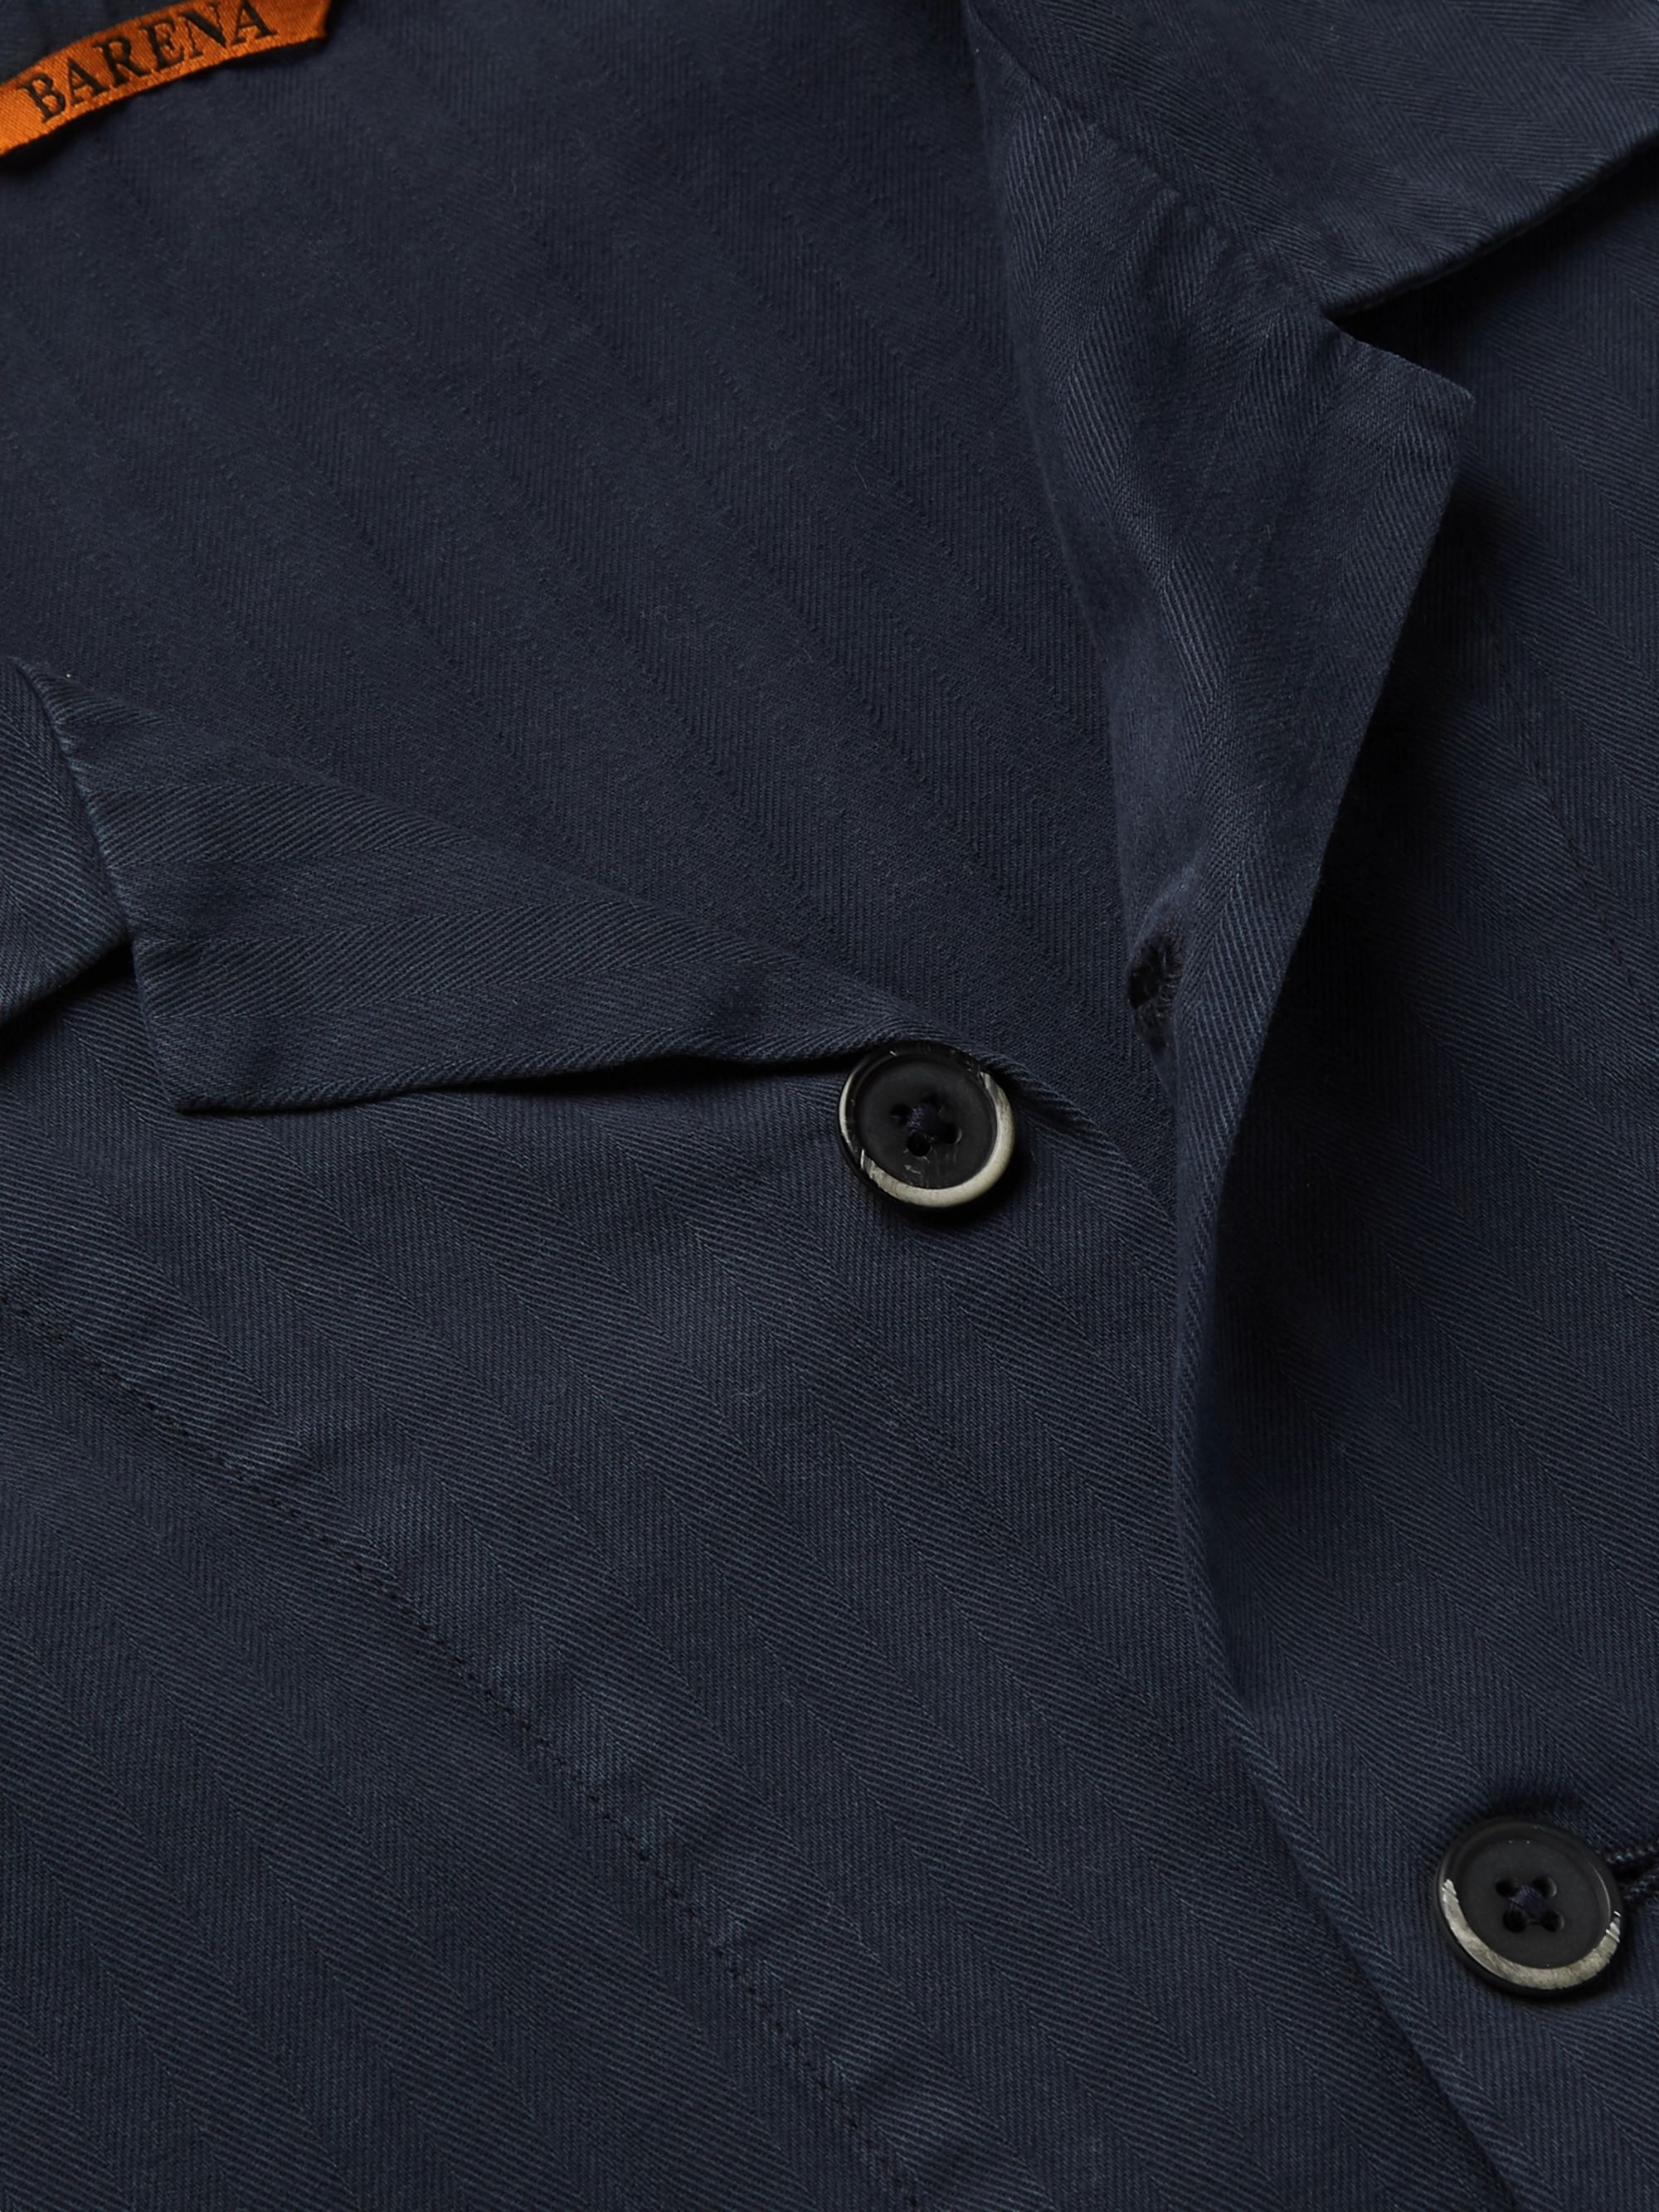 Barena Camp-Collar Cotton Shirt